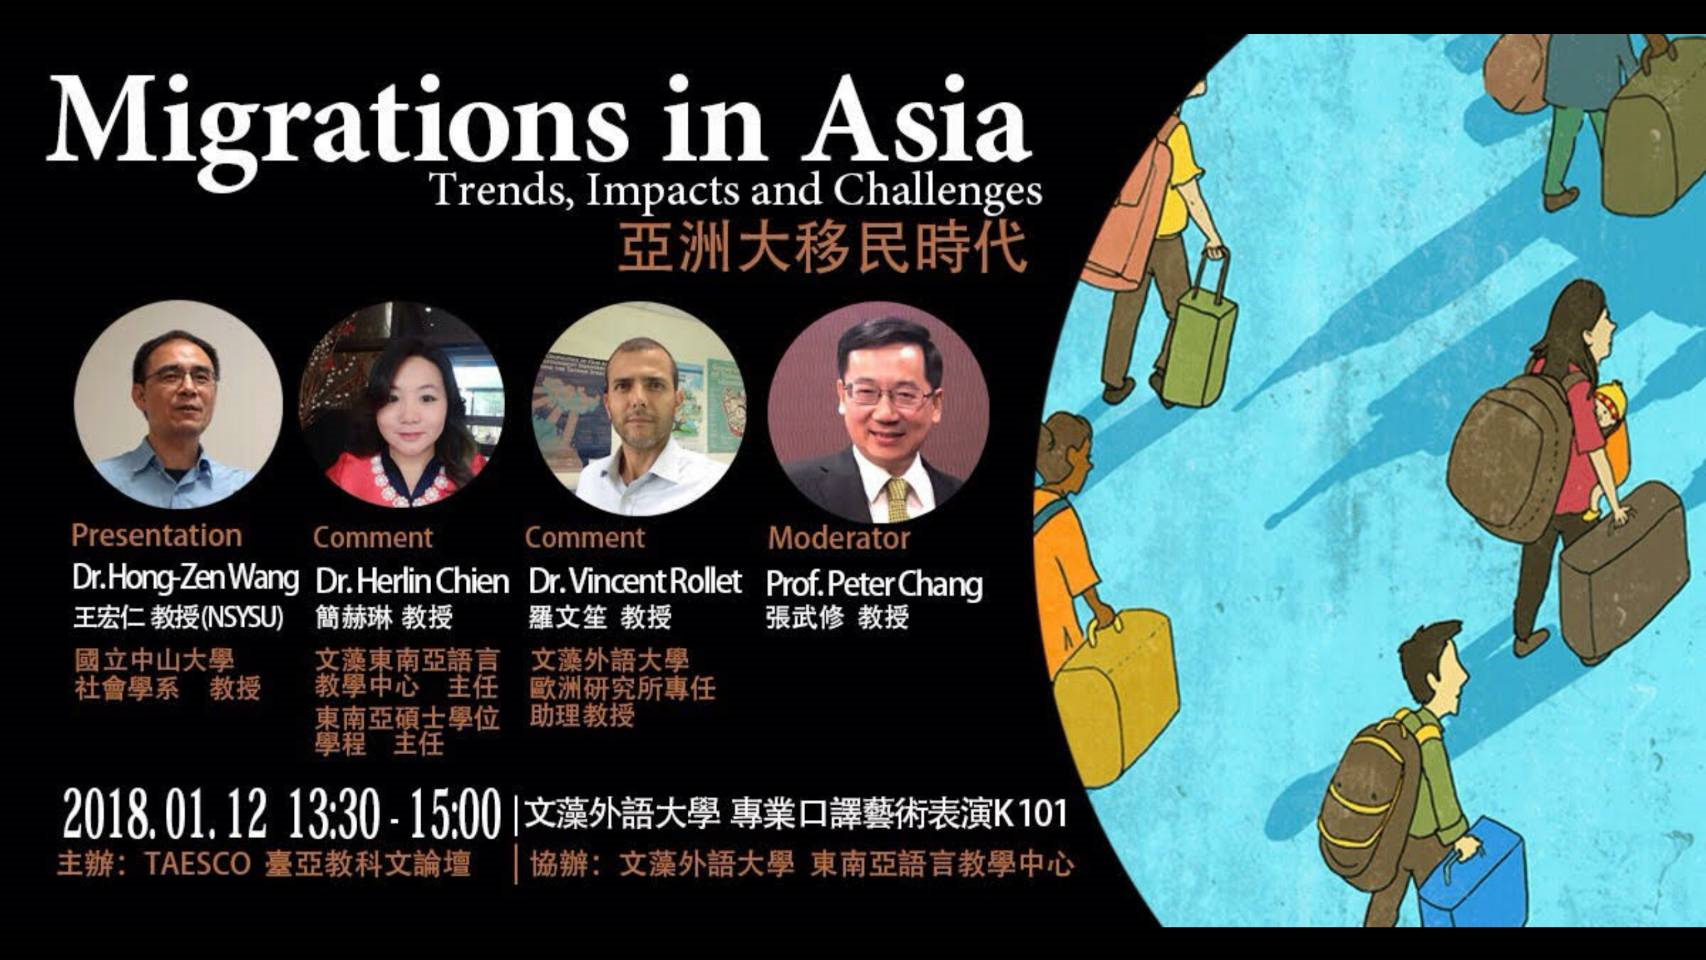 01/12「TAESCO 台亞教科文論壇:Migrations in Asia-Trends, Impacts and Challenges 亞洲大移民時代」海報